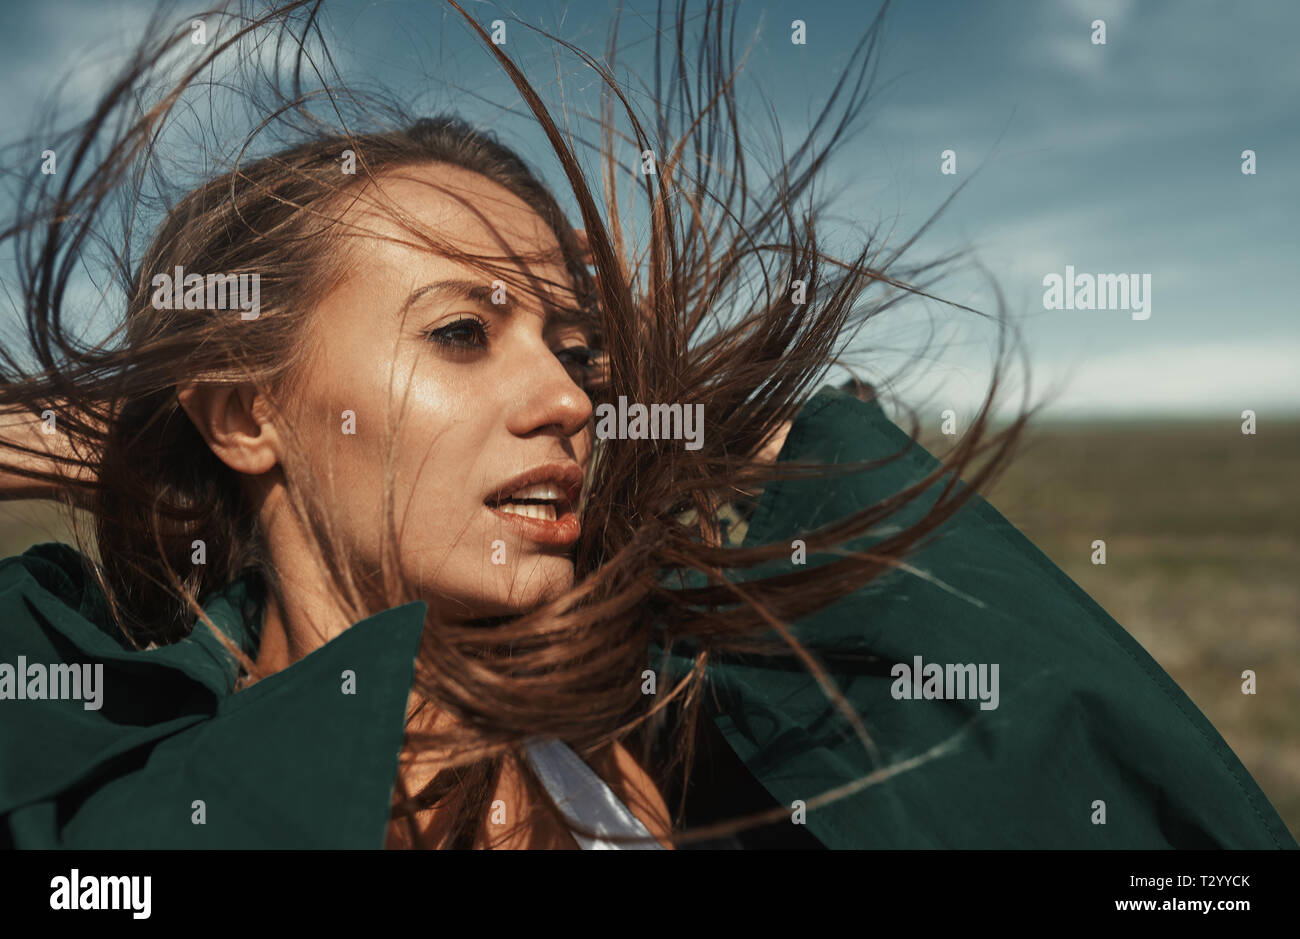 Woman outdoors with tousled wind blown hairs - Stock Image